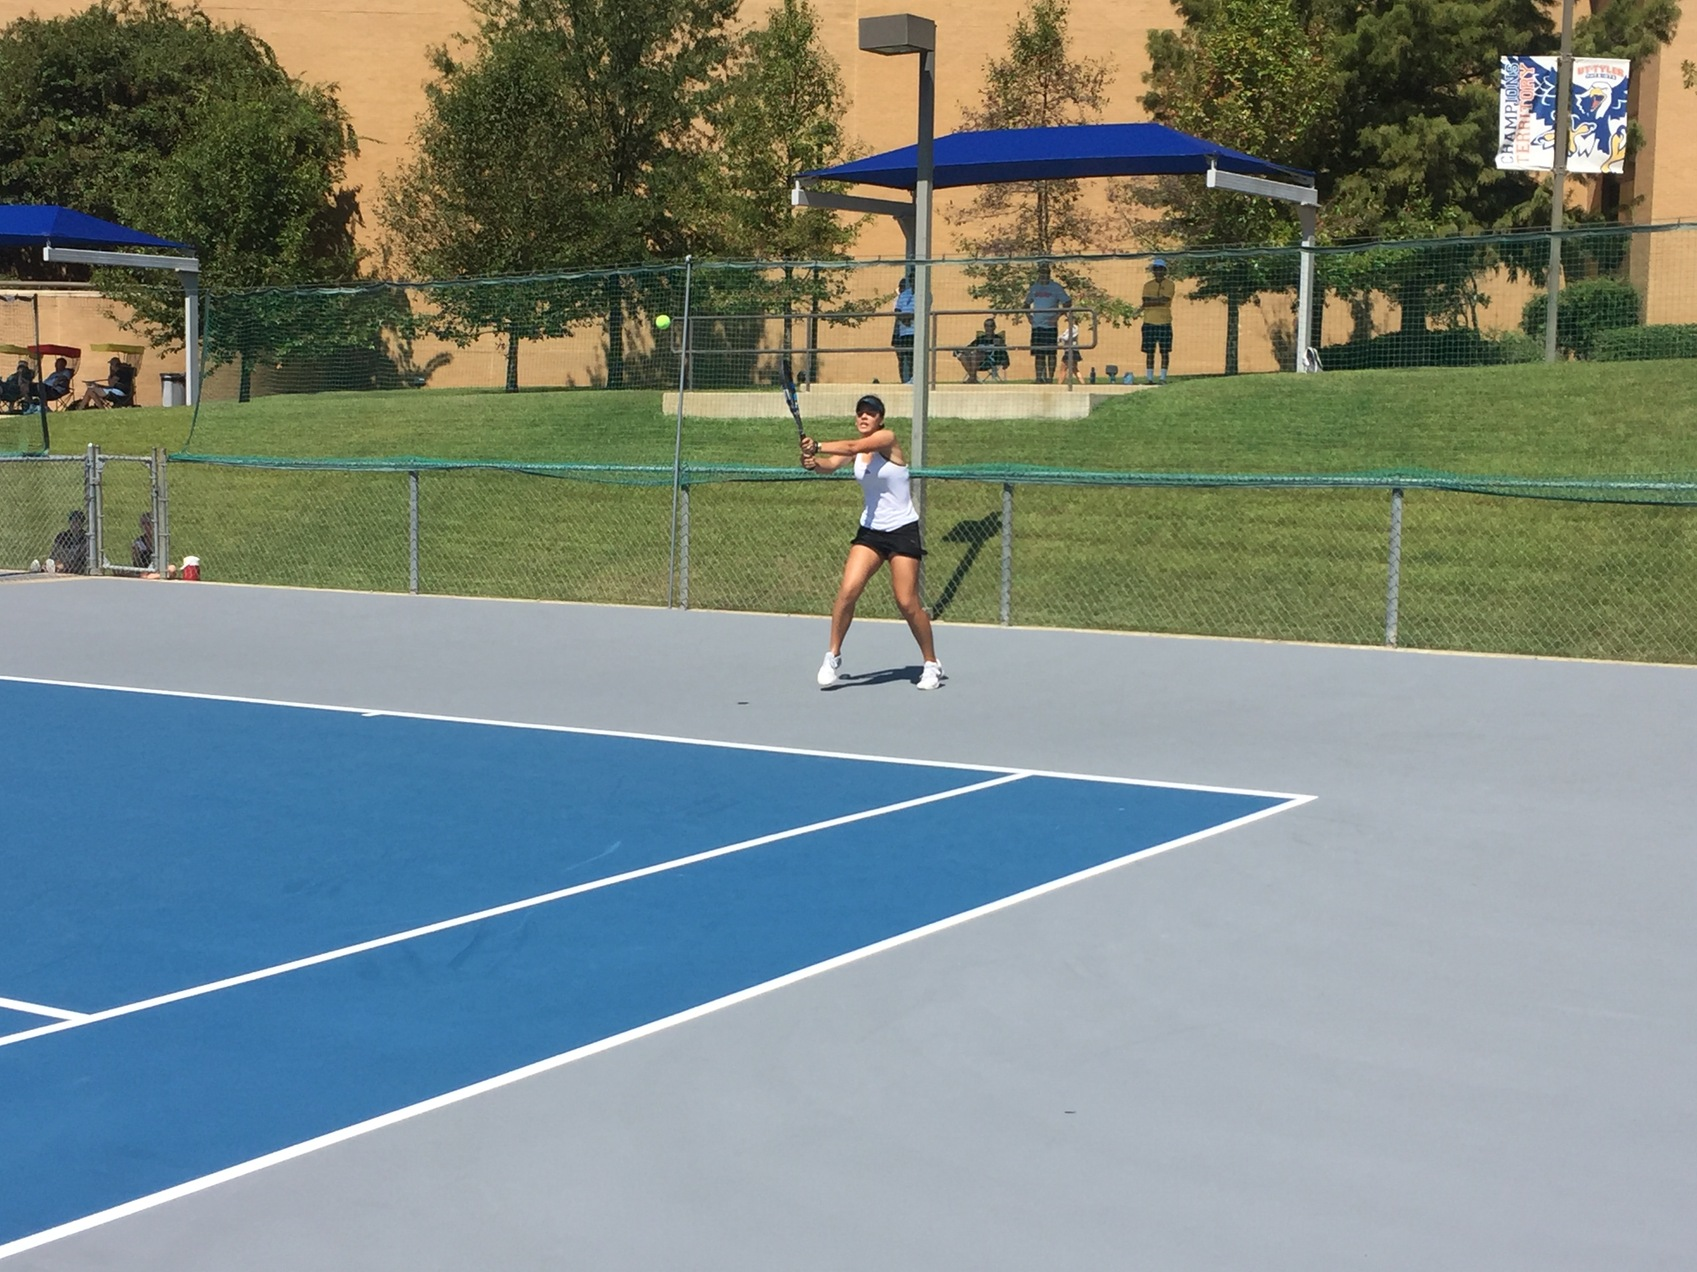 Colby Mules Defeat Women's Tennis 5-4 in SCAC/NESCAC Showdown